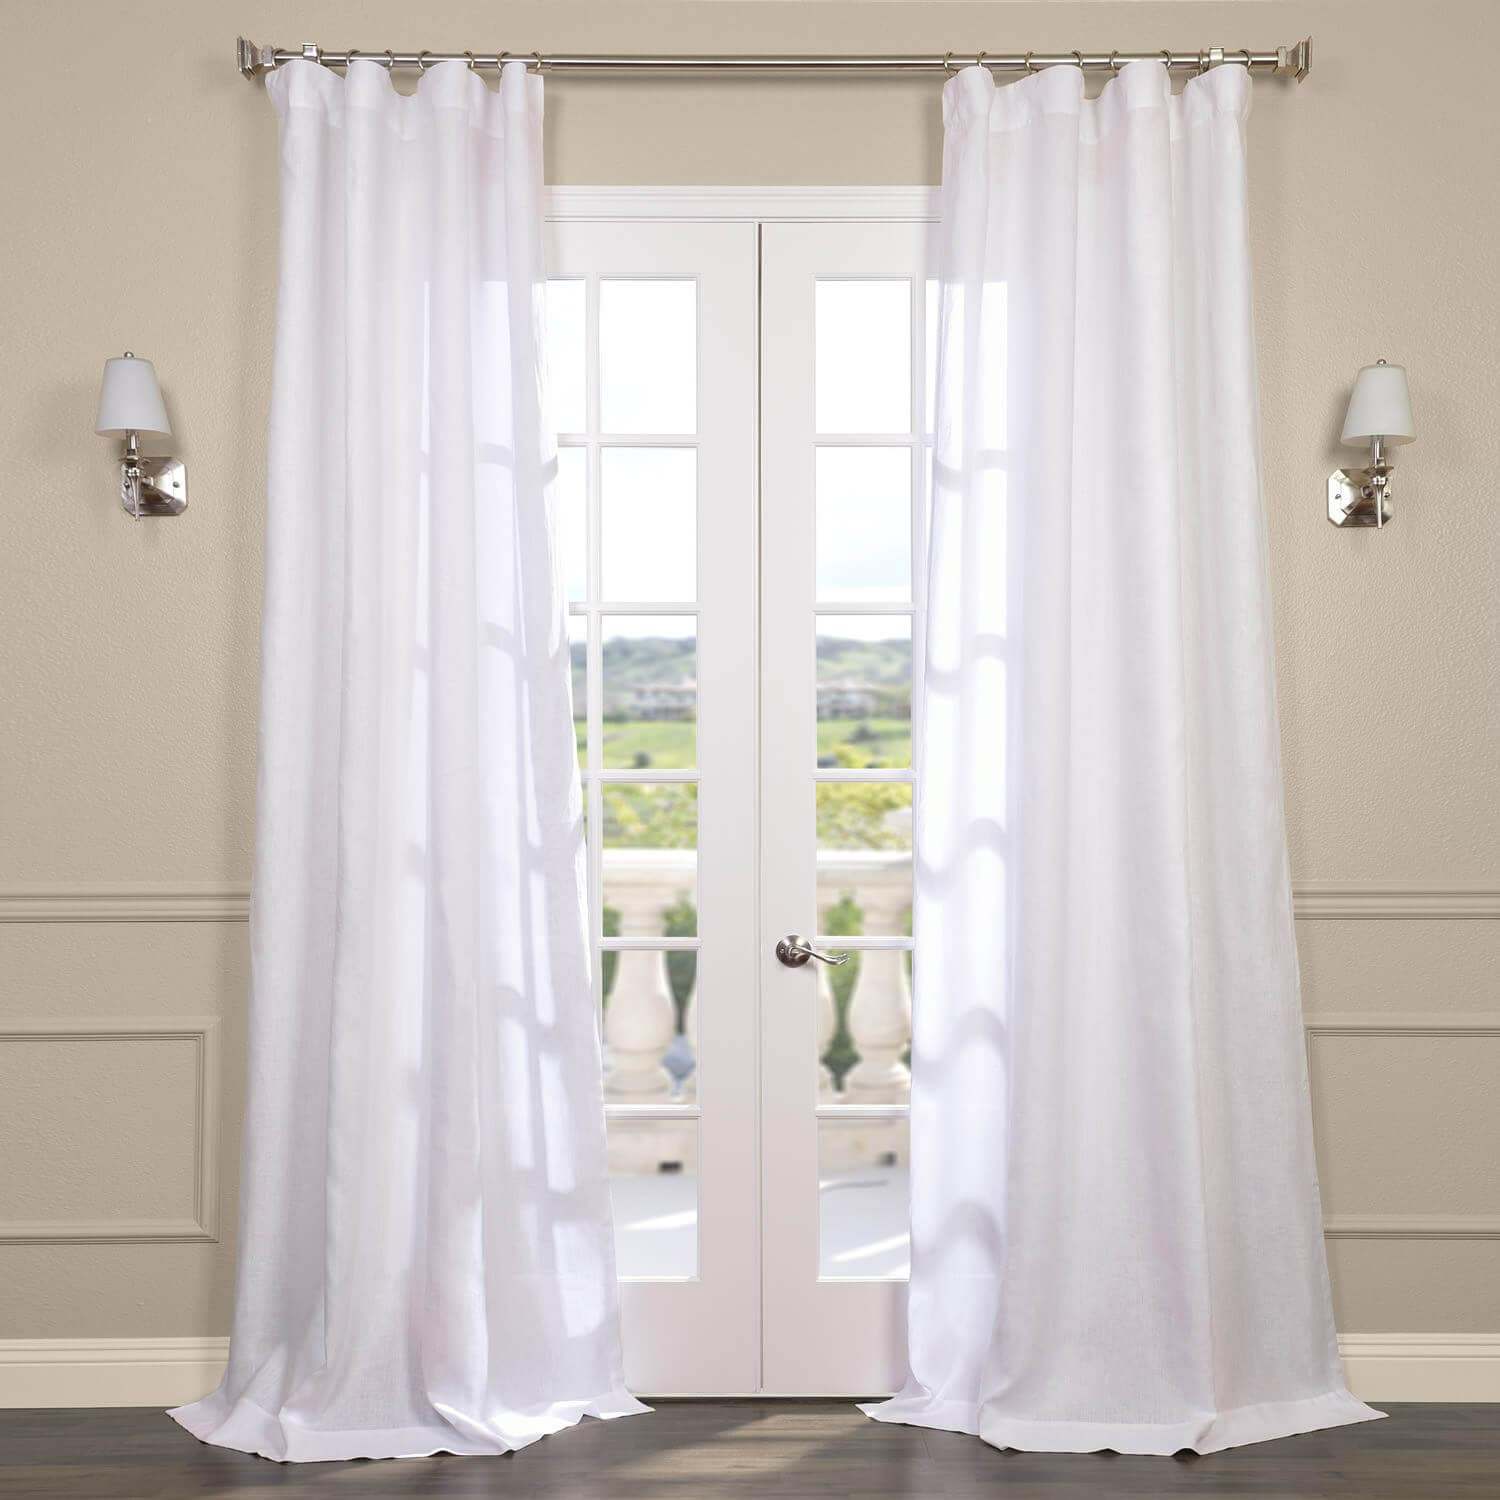 Signature Purity White French Linen Sheer Curtains